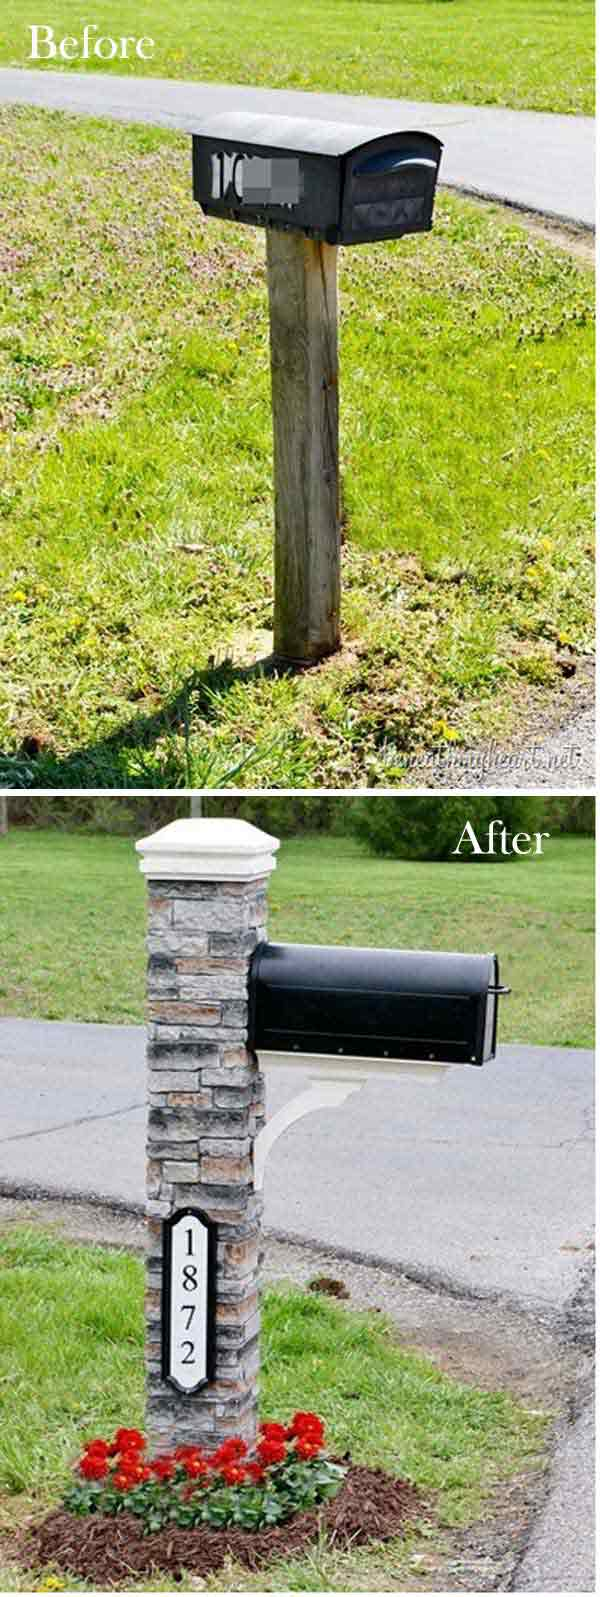 Give a Great First Impression with This DIY Brick Mailbox.